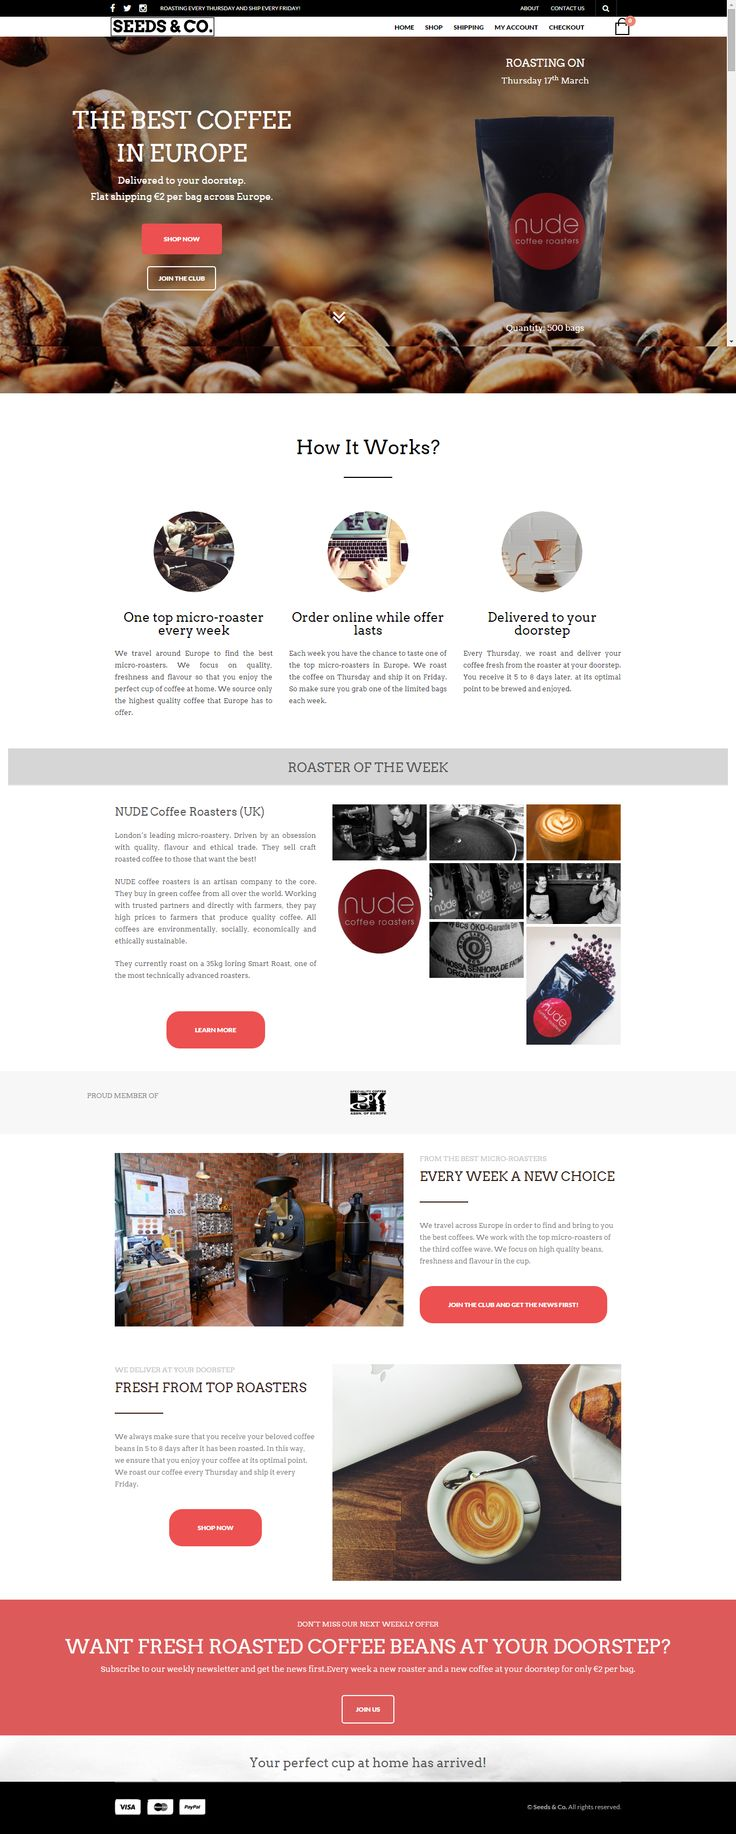 seeds-cafe.com was built with The Retailer WordPress theme. Learn more about what this top-seller theme has to offer: https://themeforest.net/item/the-retailer-responsive-wordpress-theme/4287447?utm_source=pinterest.com&utm_medium=social&utm_content=seeds&utm_campaign=showcase #wordpress #webdesign #wordpresstheme #theme #templates #layout